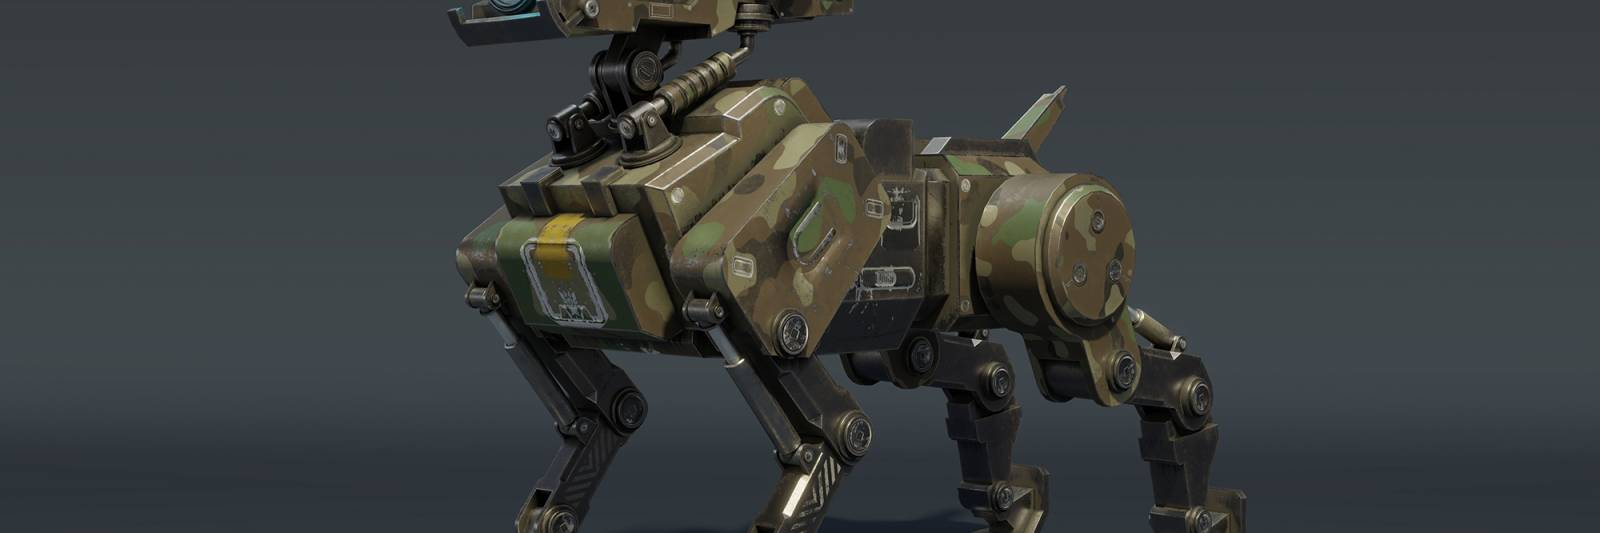 It's Too Late To Let Slip The Robodogs Of War